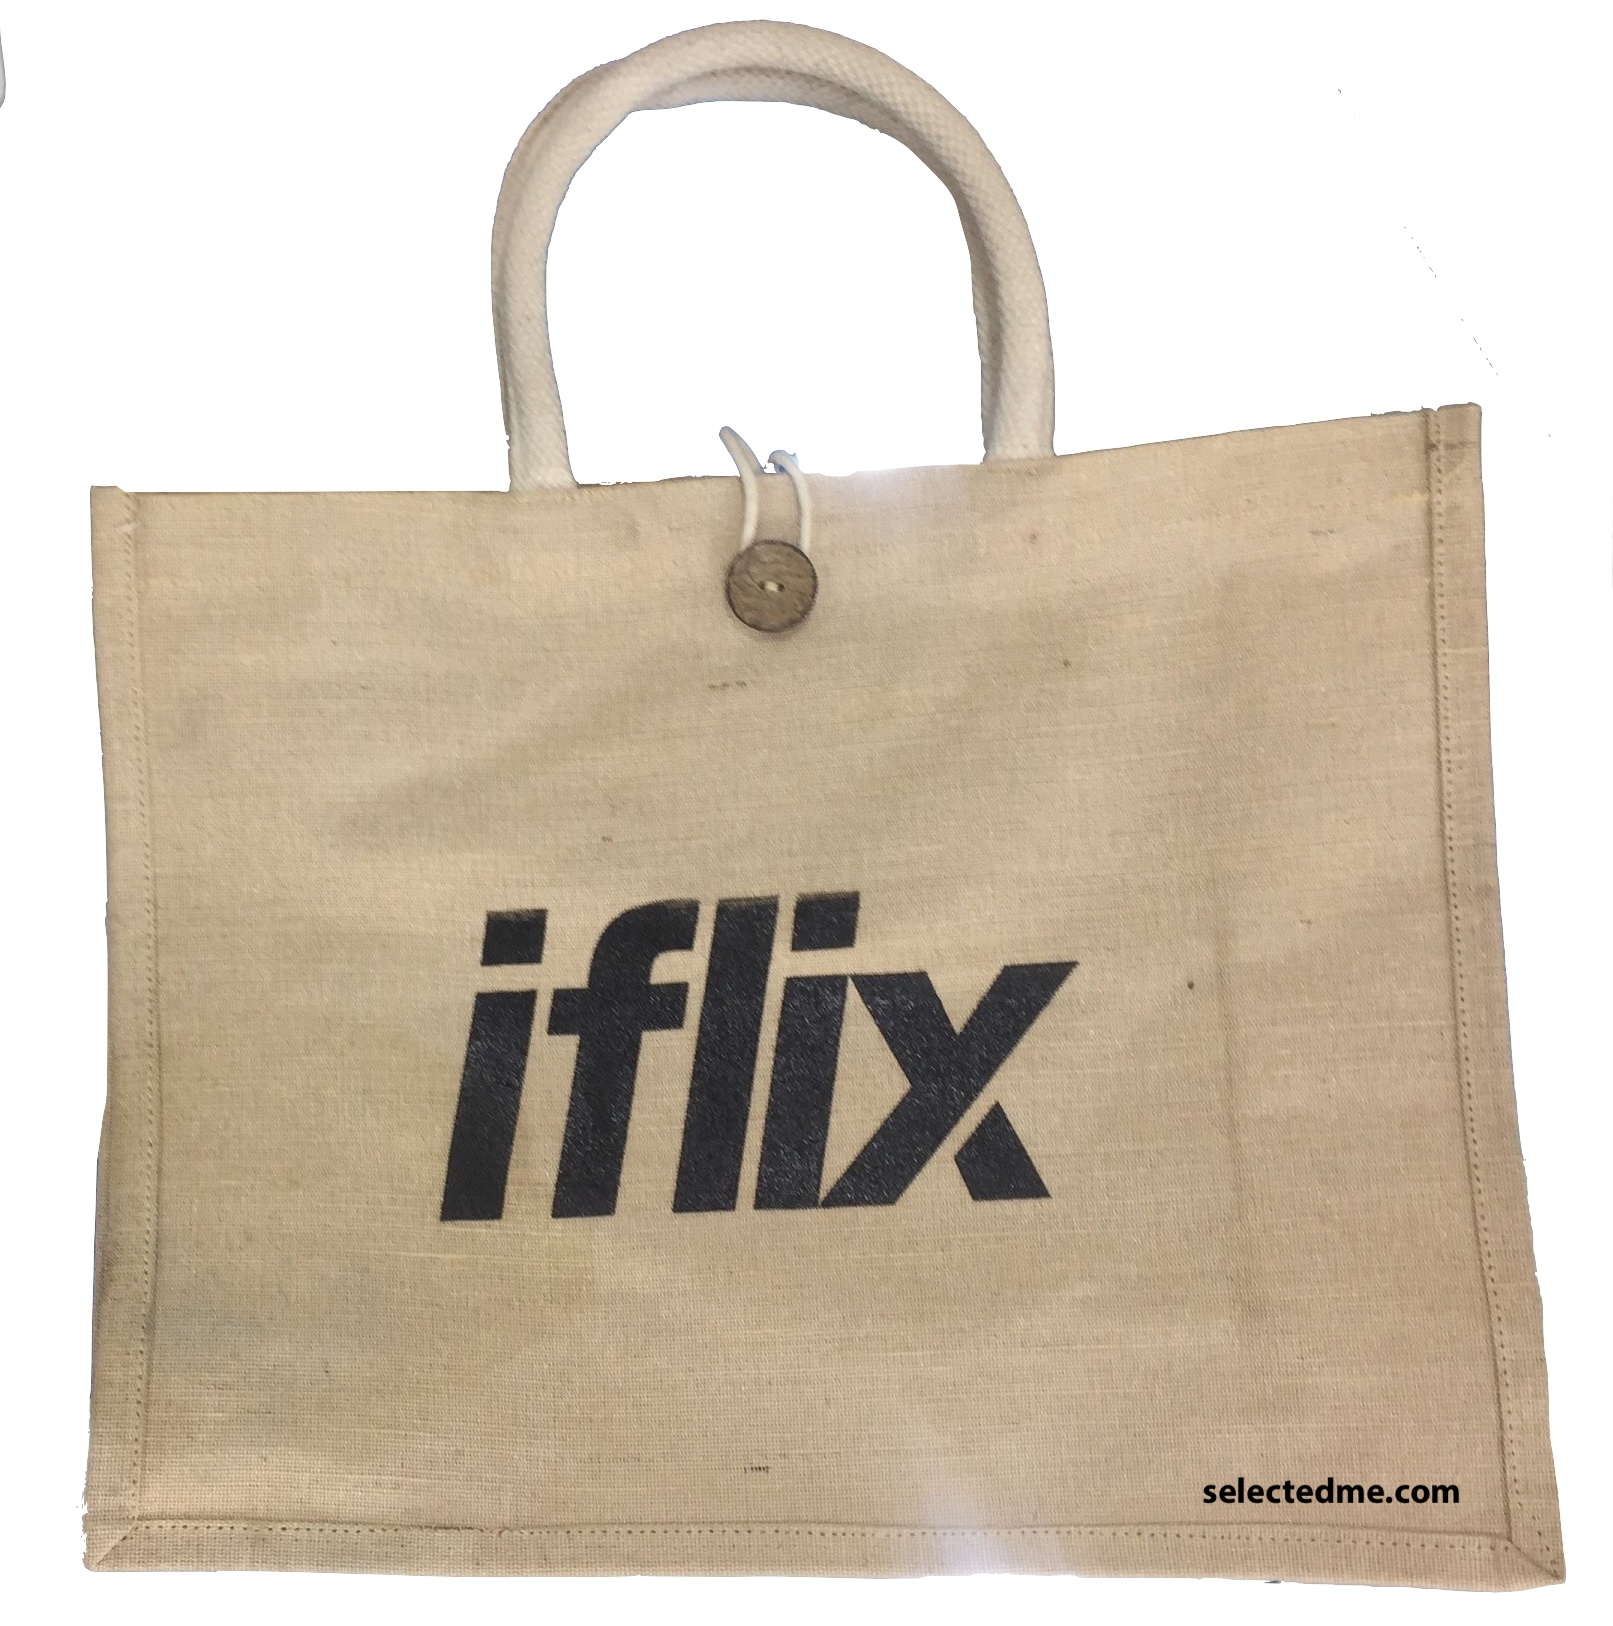 Eco Jute Bags - Buy Eco Friendly Jute Bags with Printing